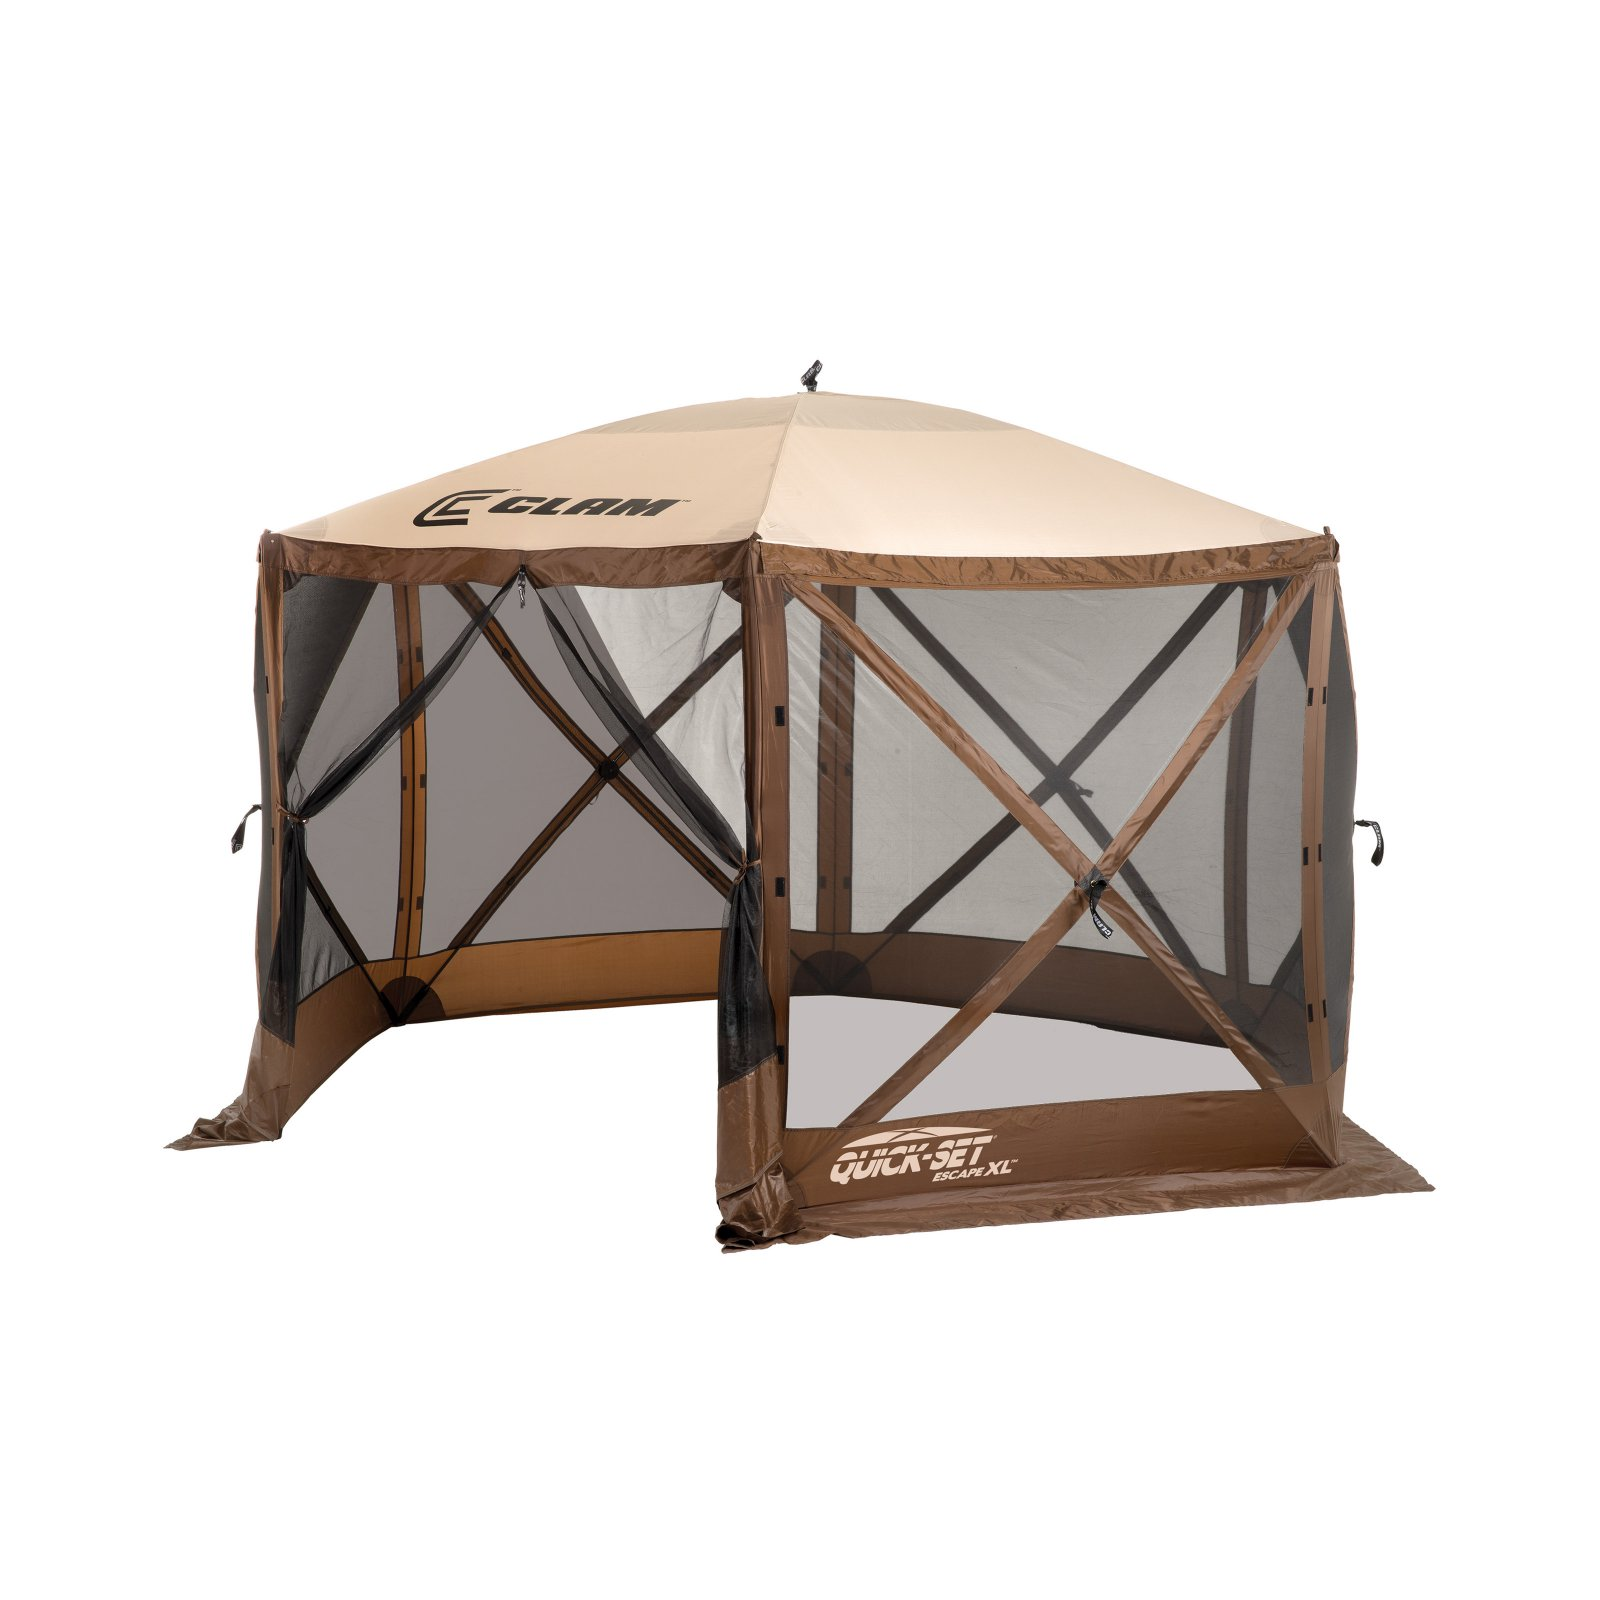 Clam Quick-Set Escape XL Canopy Shelter - Brown/Tan